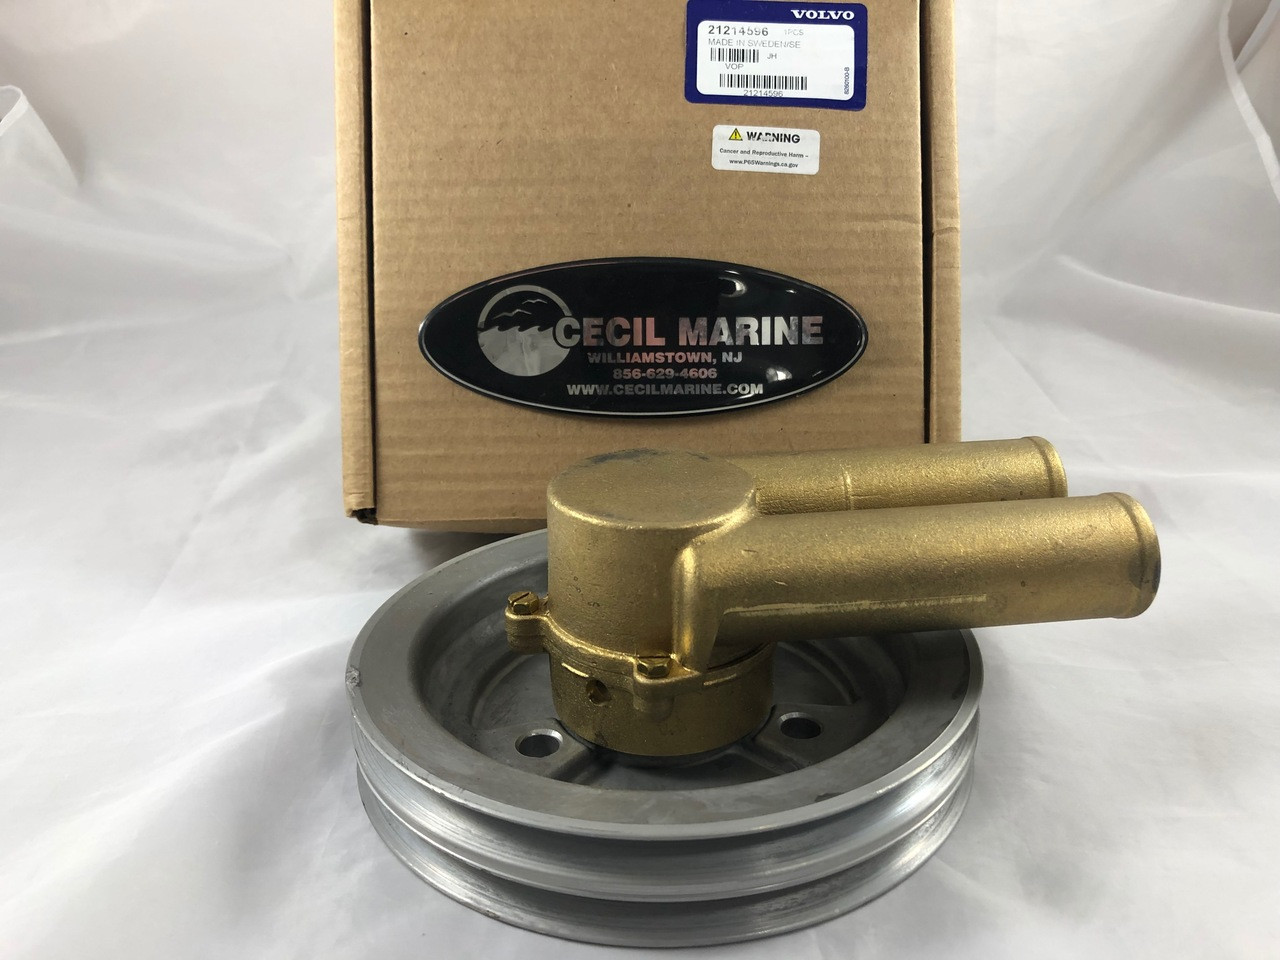 $349.95* SEA WATER PUMP - 21214596 ** IN STOCK & READY TO SHIP! **